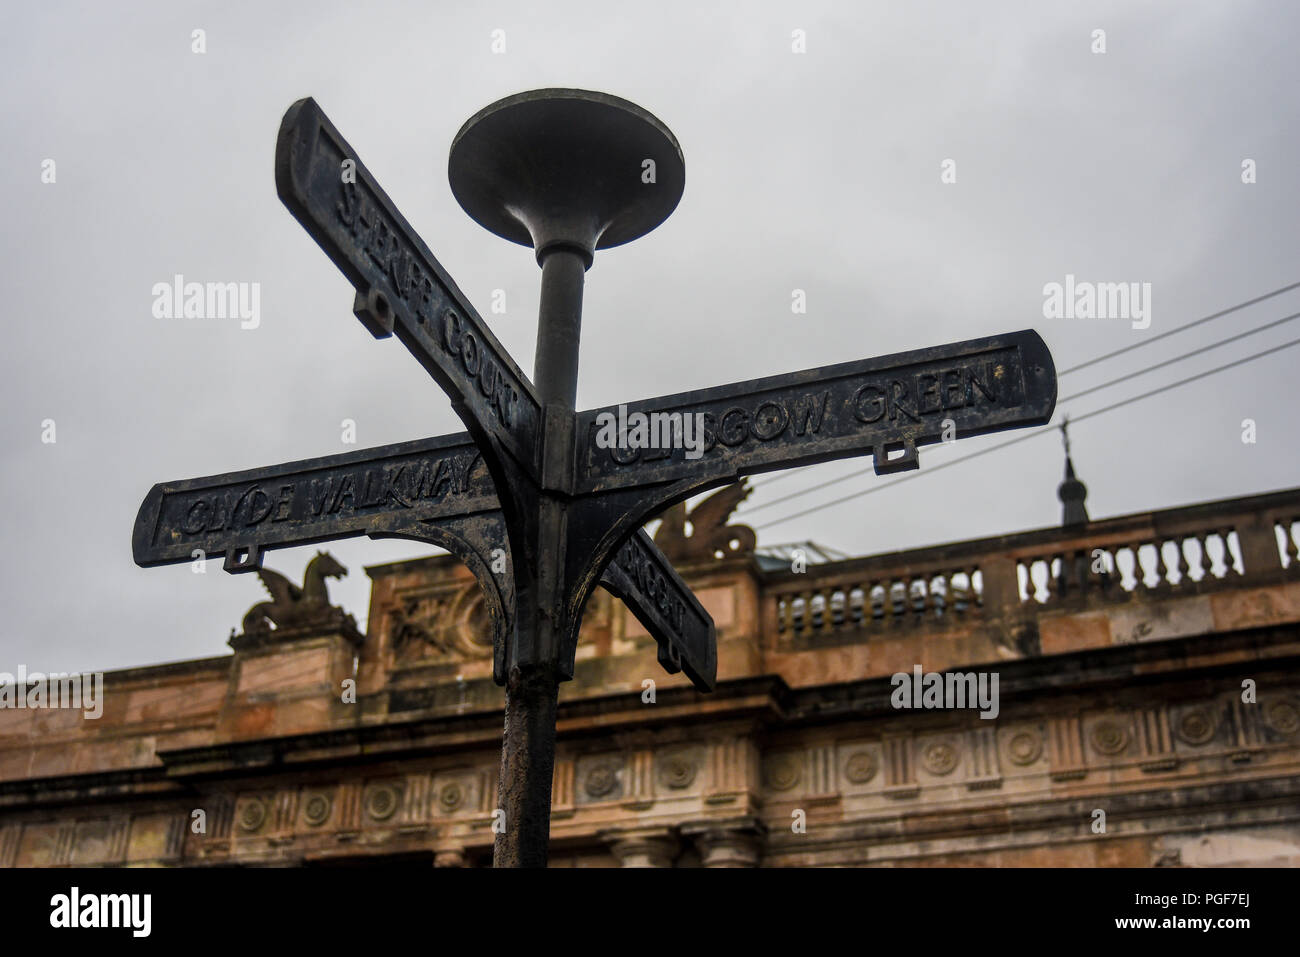 Old sign to indicate the names of the streets in the city of Glasgow Scotland - Stock Image